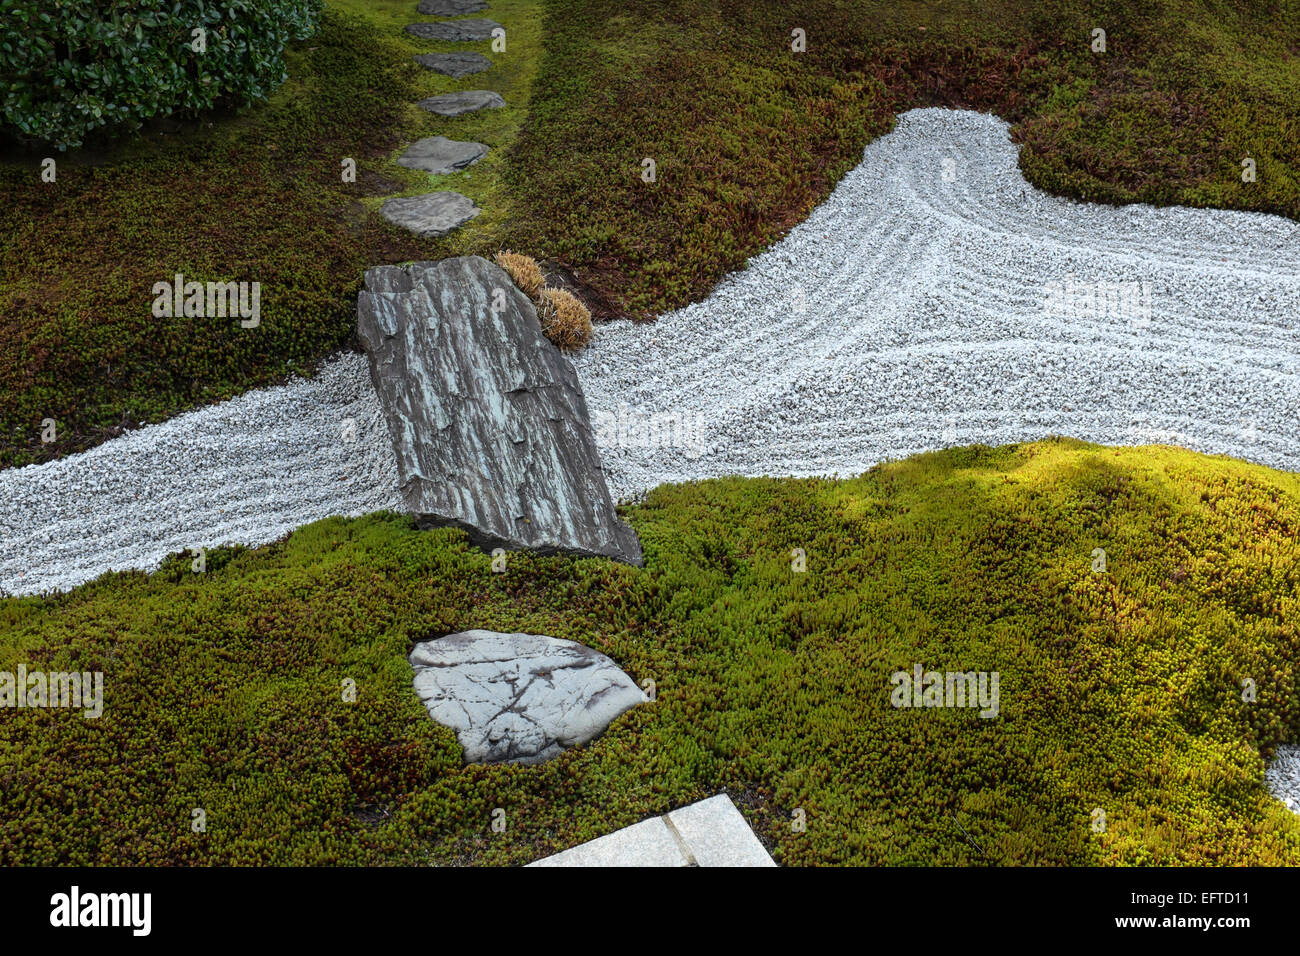 Japan - Kyoto - Zen gravel gardens at Daitoku-ji Temple, Kyoto - Stock Image